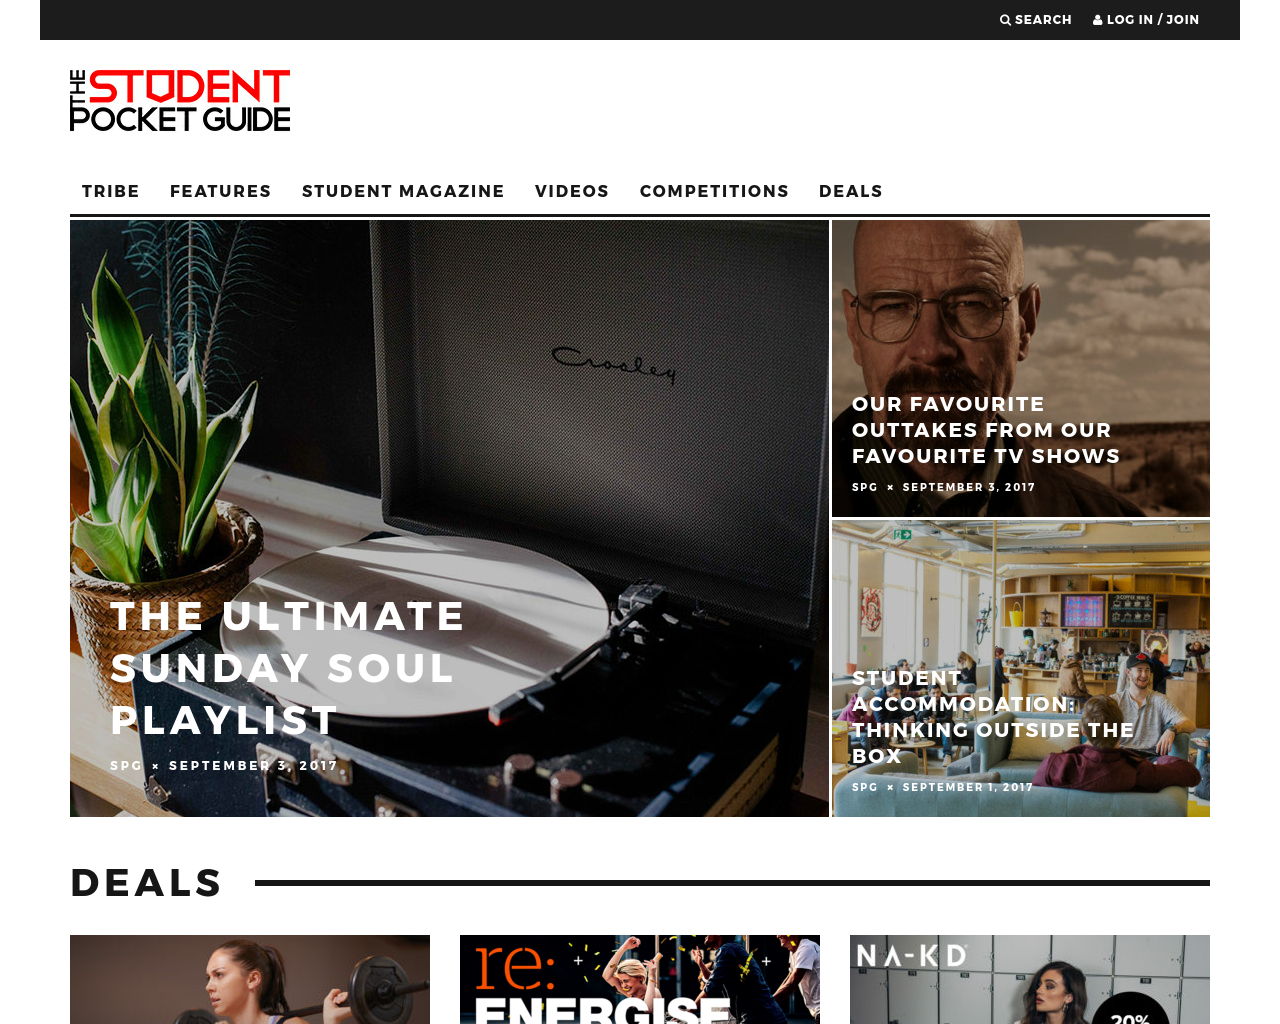 The-Student-Pocket-Guide-Advertising-Reviews-Pricing